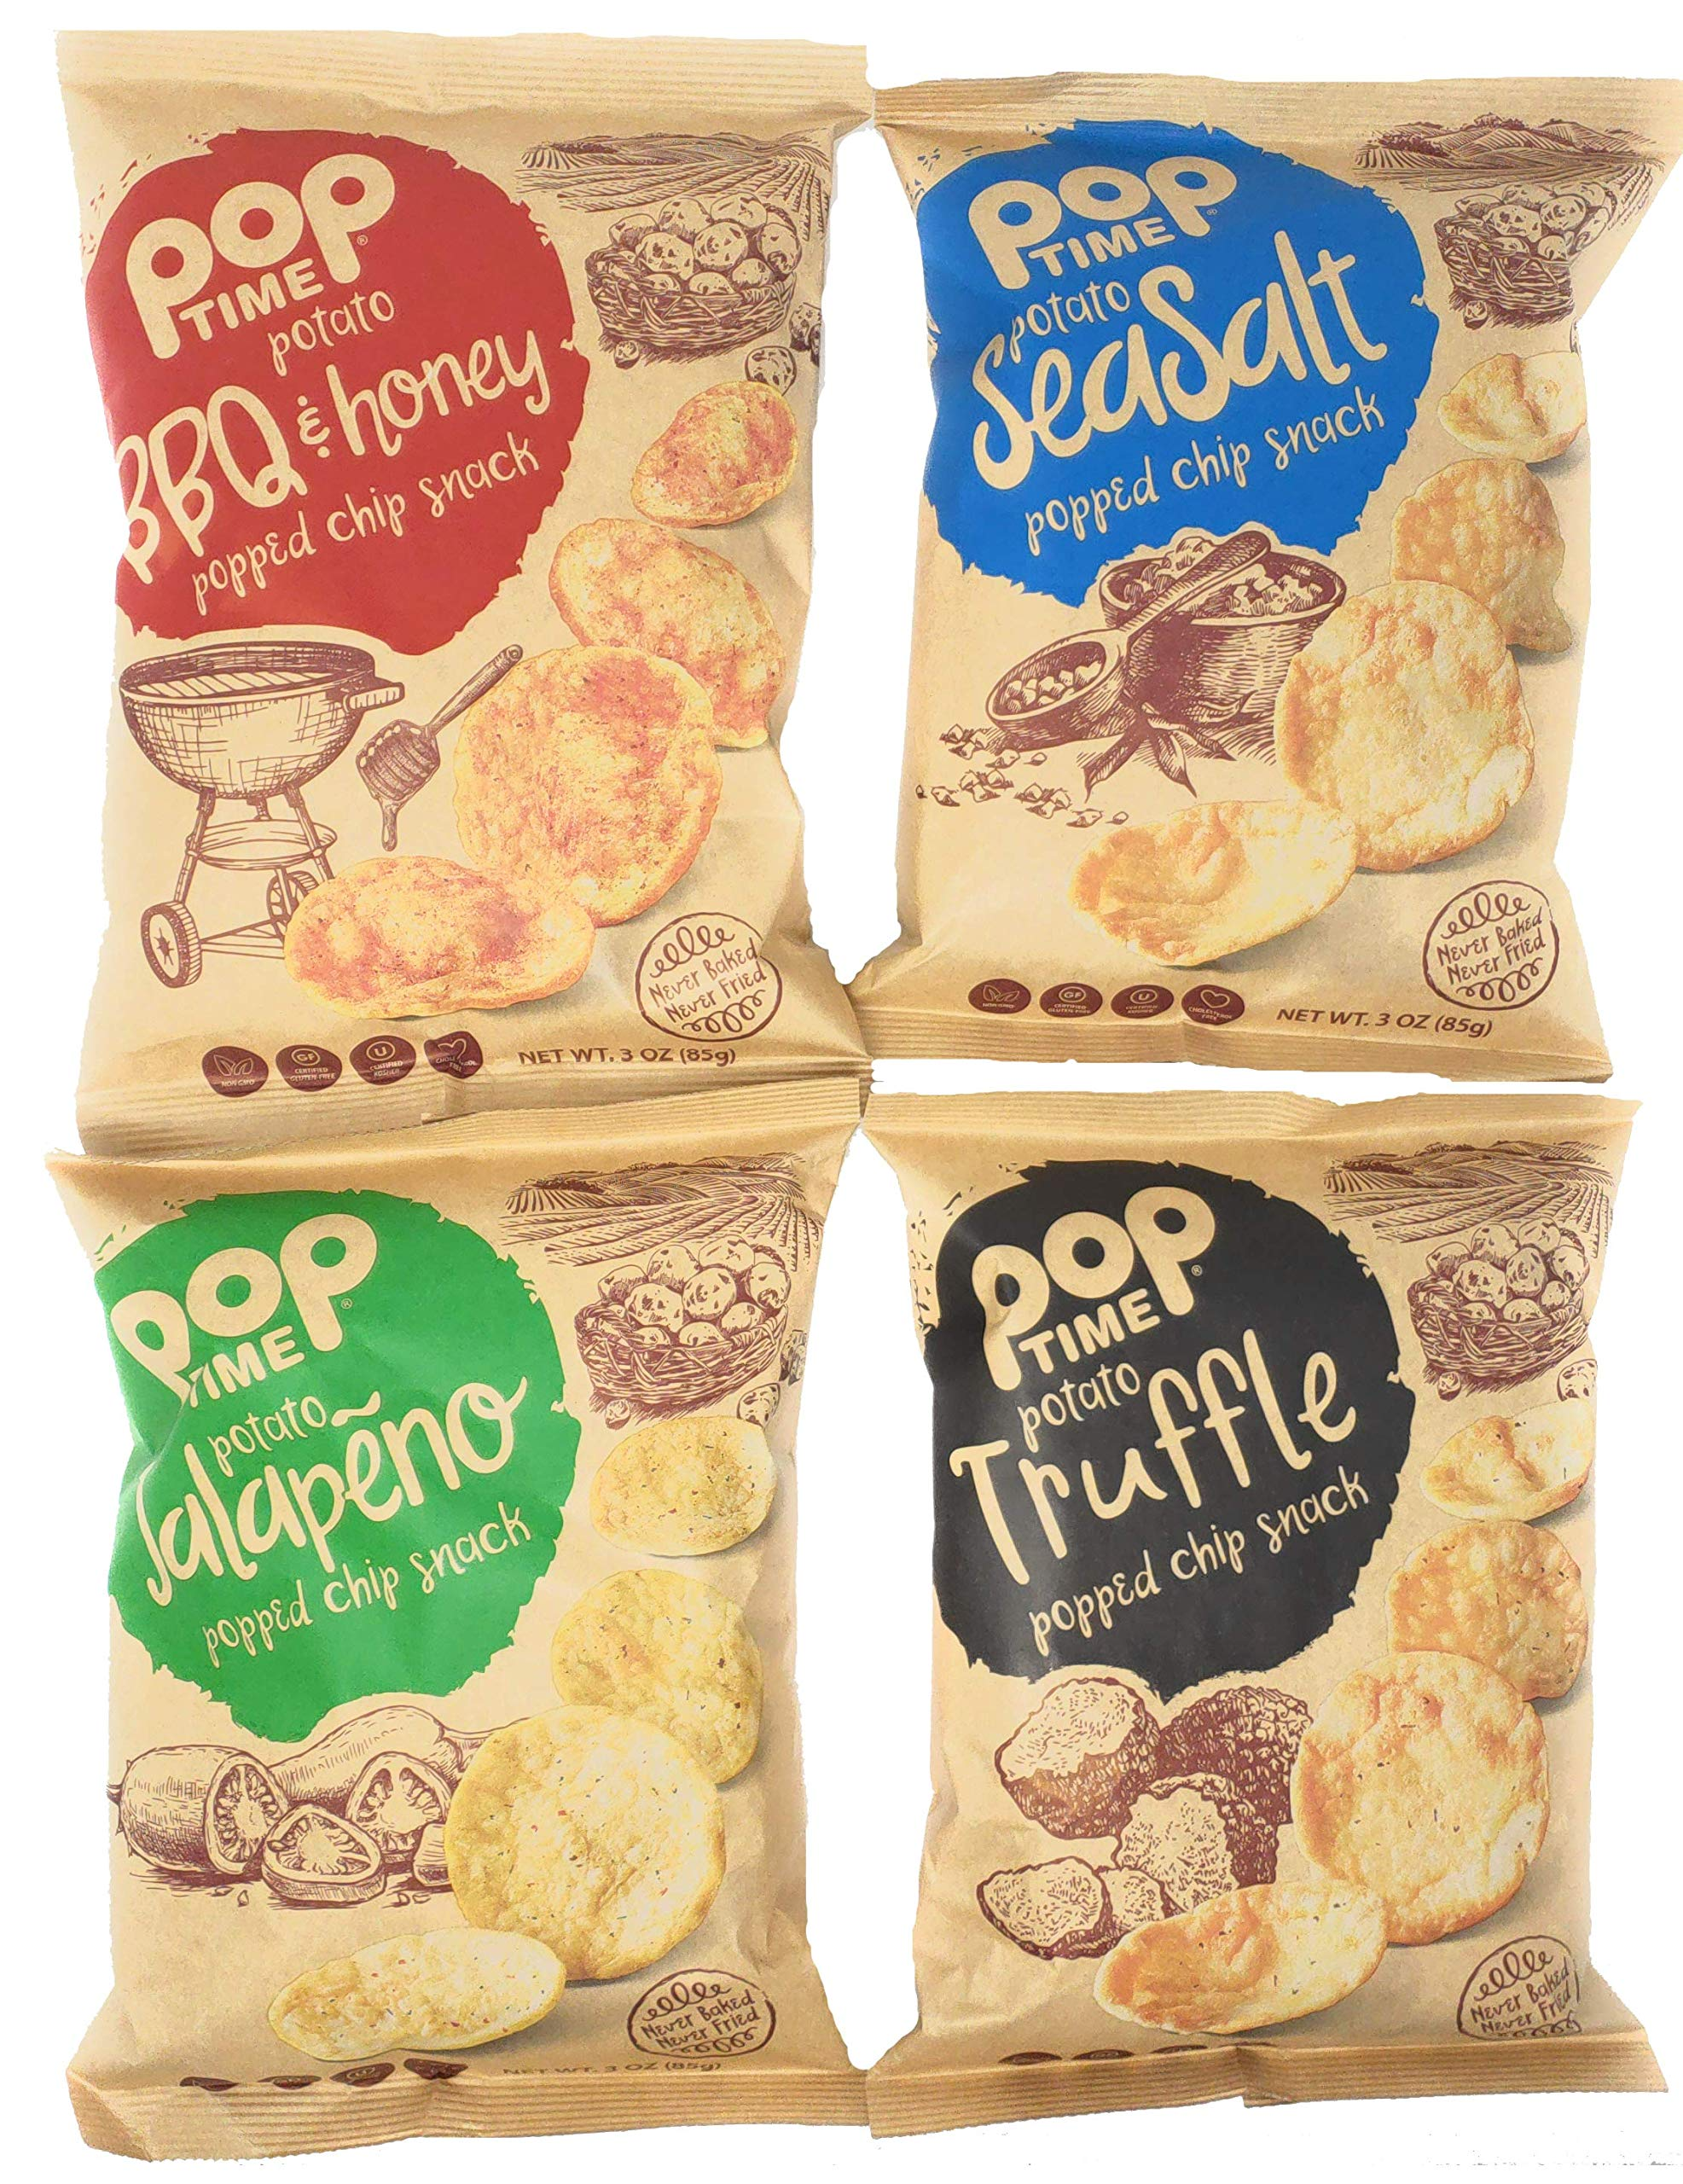 POP TIME Popped Chips, Variety Pack, 4 Count (3 oz Bags) Sea Salt, Honey BBQ, Jalapeno, Truffle - Non-GMO, Preservatives Free, Dairy Free, Nut Free, 0g Trans Fat, Healthy, Natural Ingredients